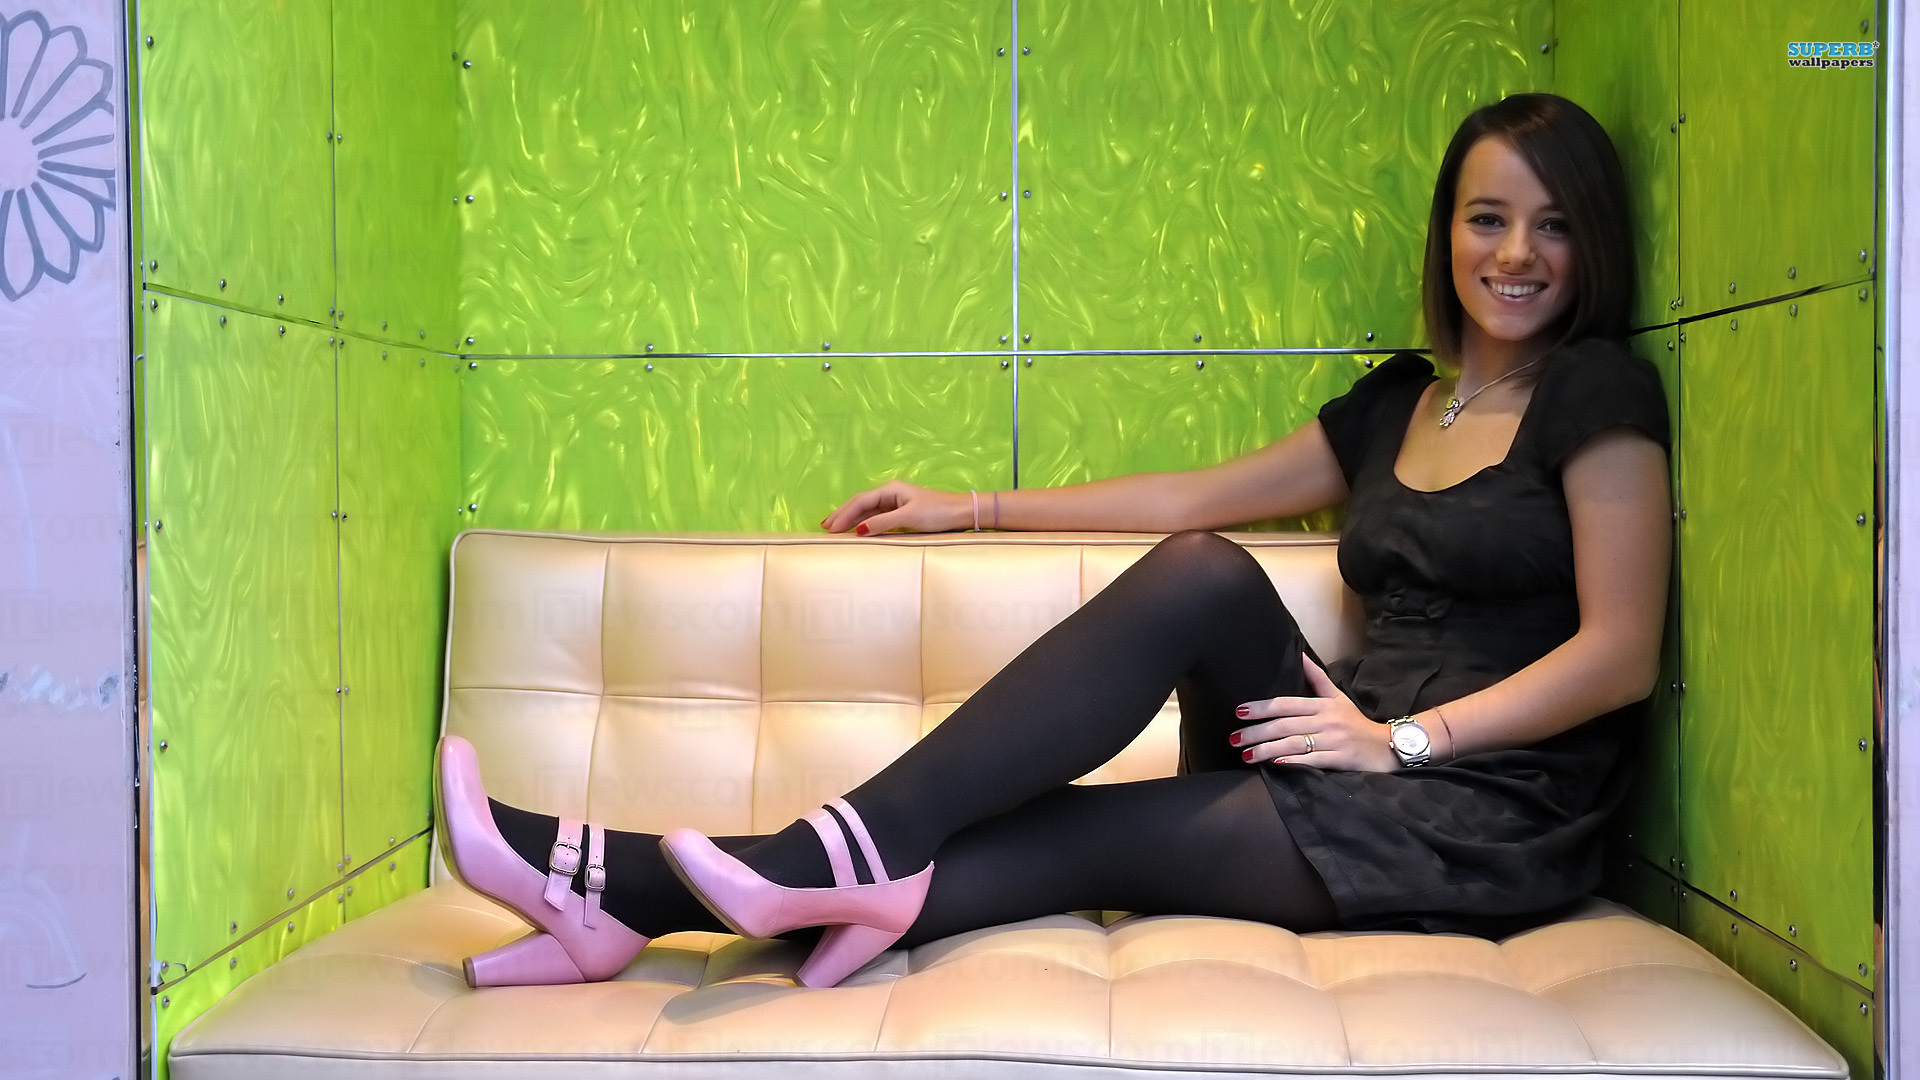 Alizee high heels softcore tubes